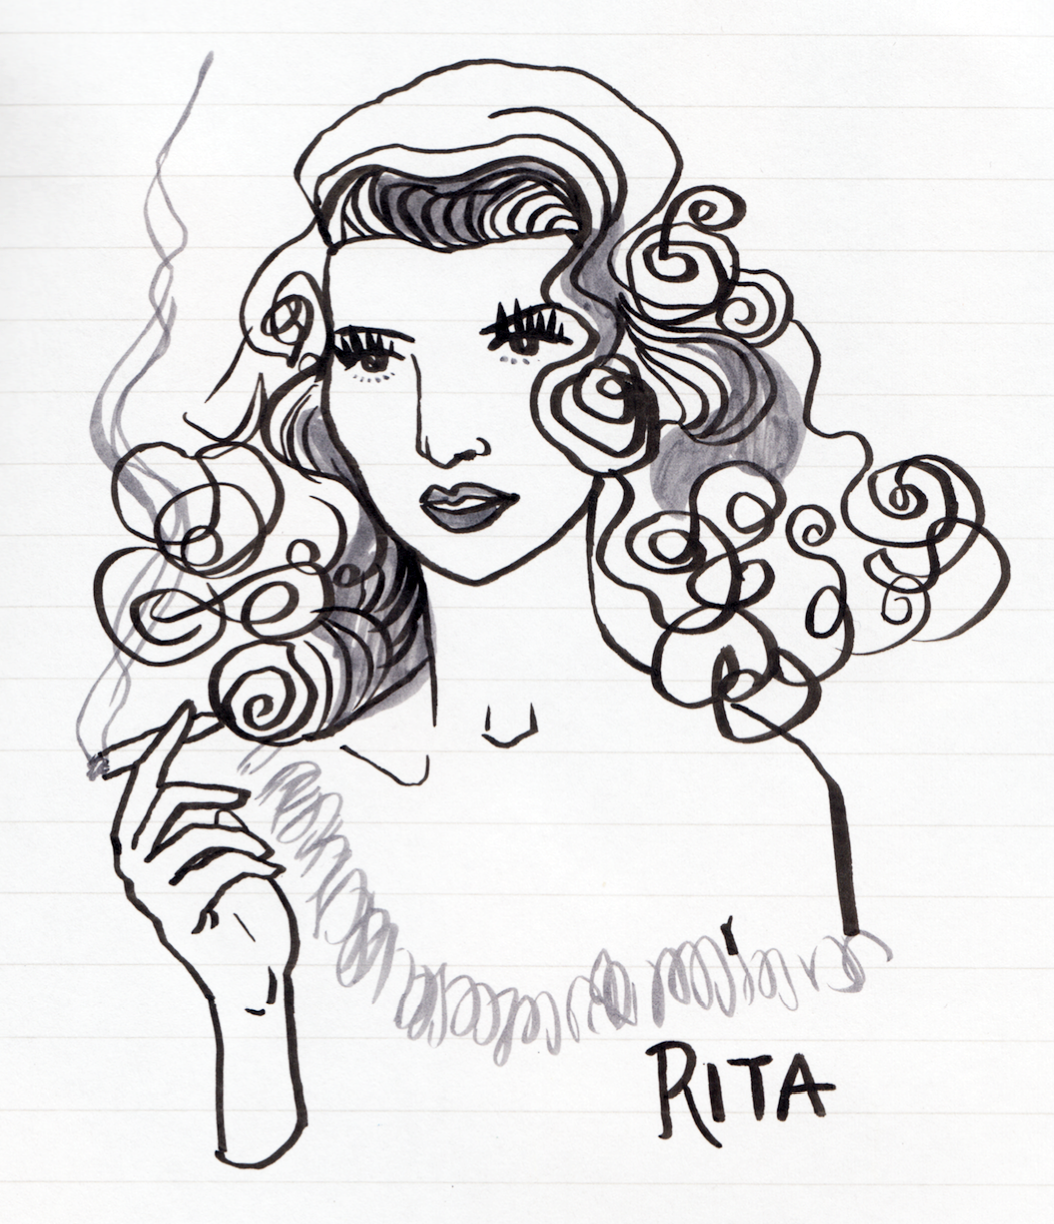 I always loved RIta Hayworth's look. I used to copy her movements secretly.